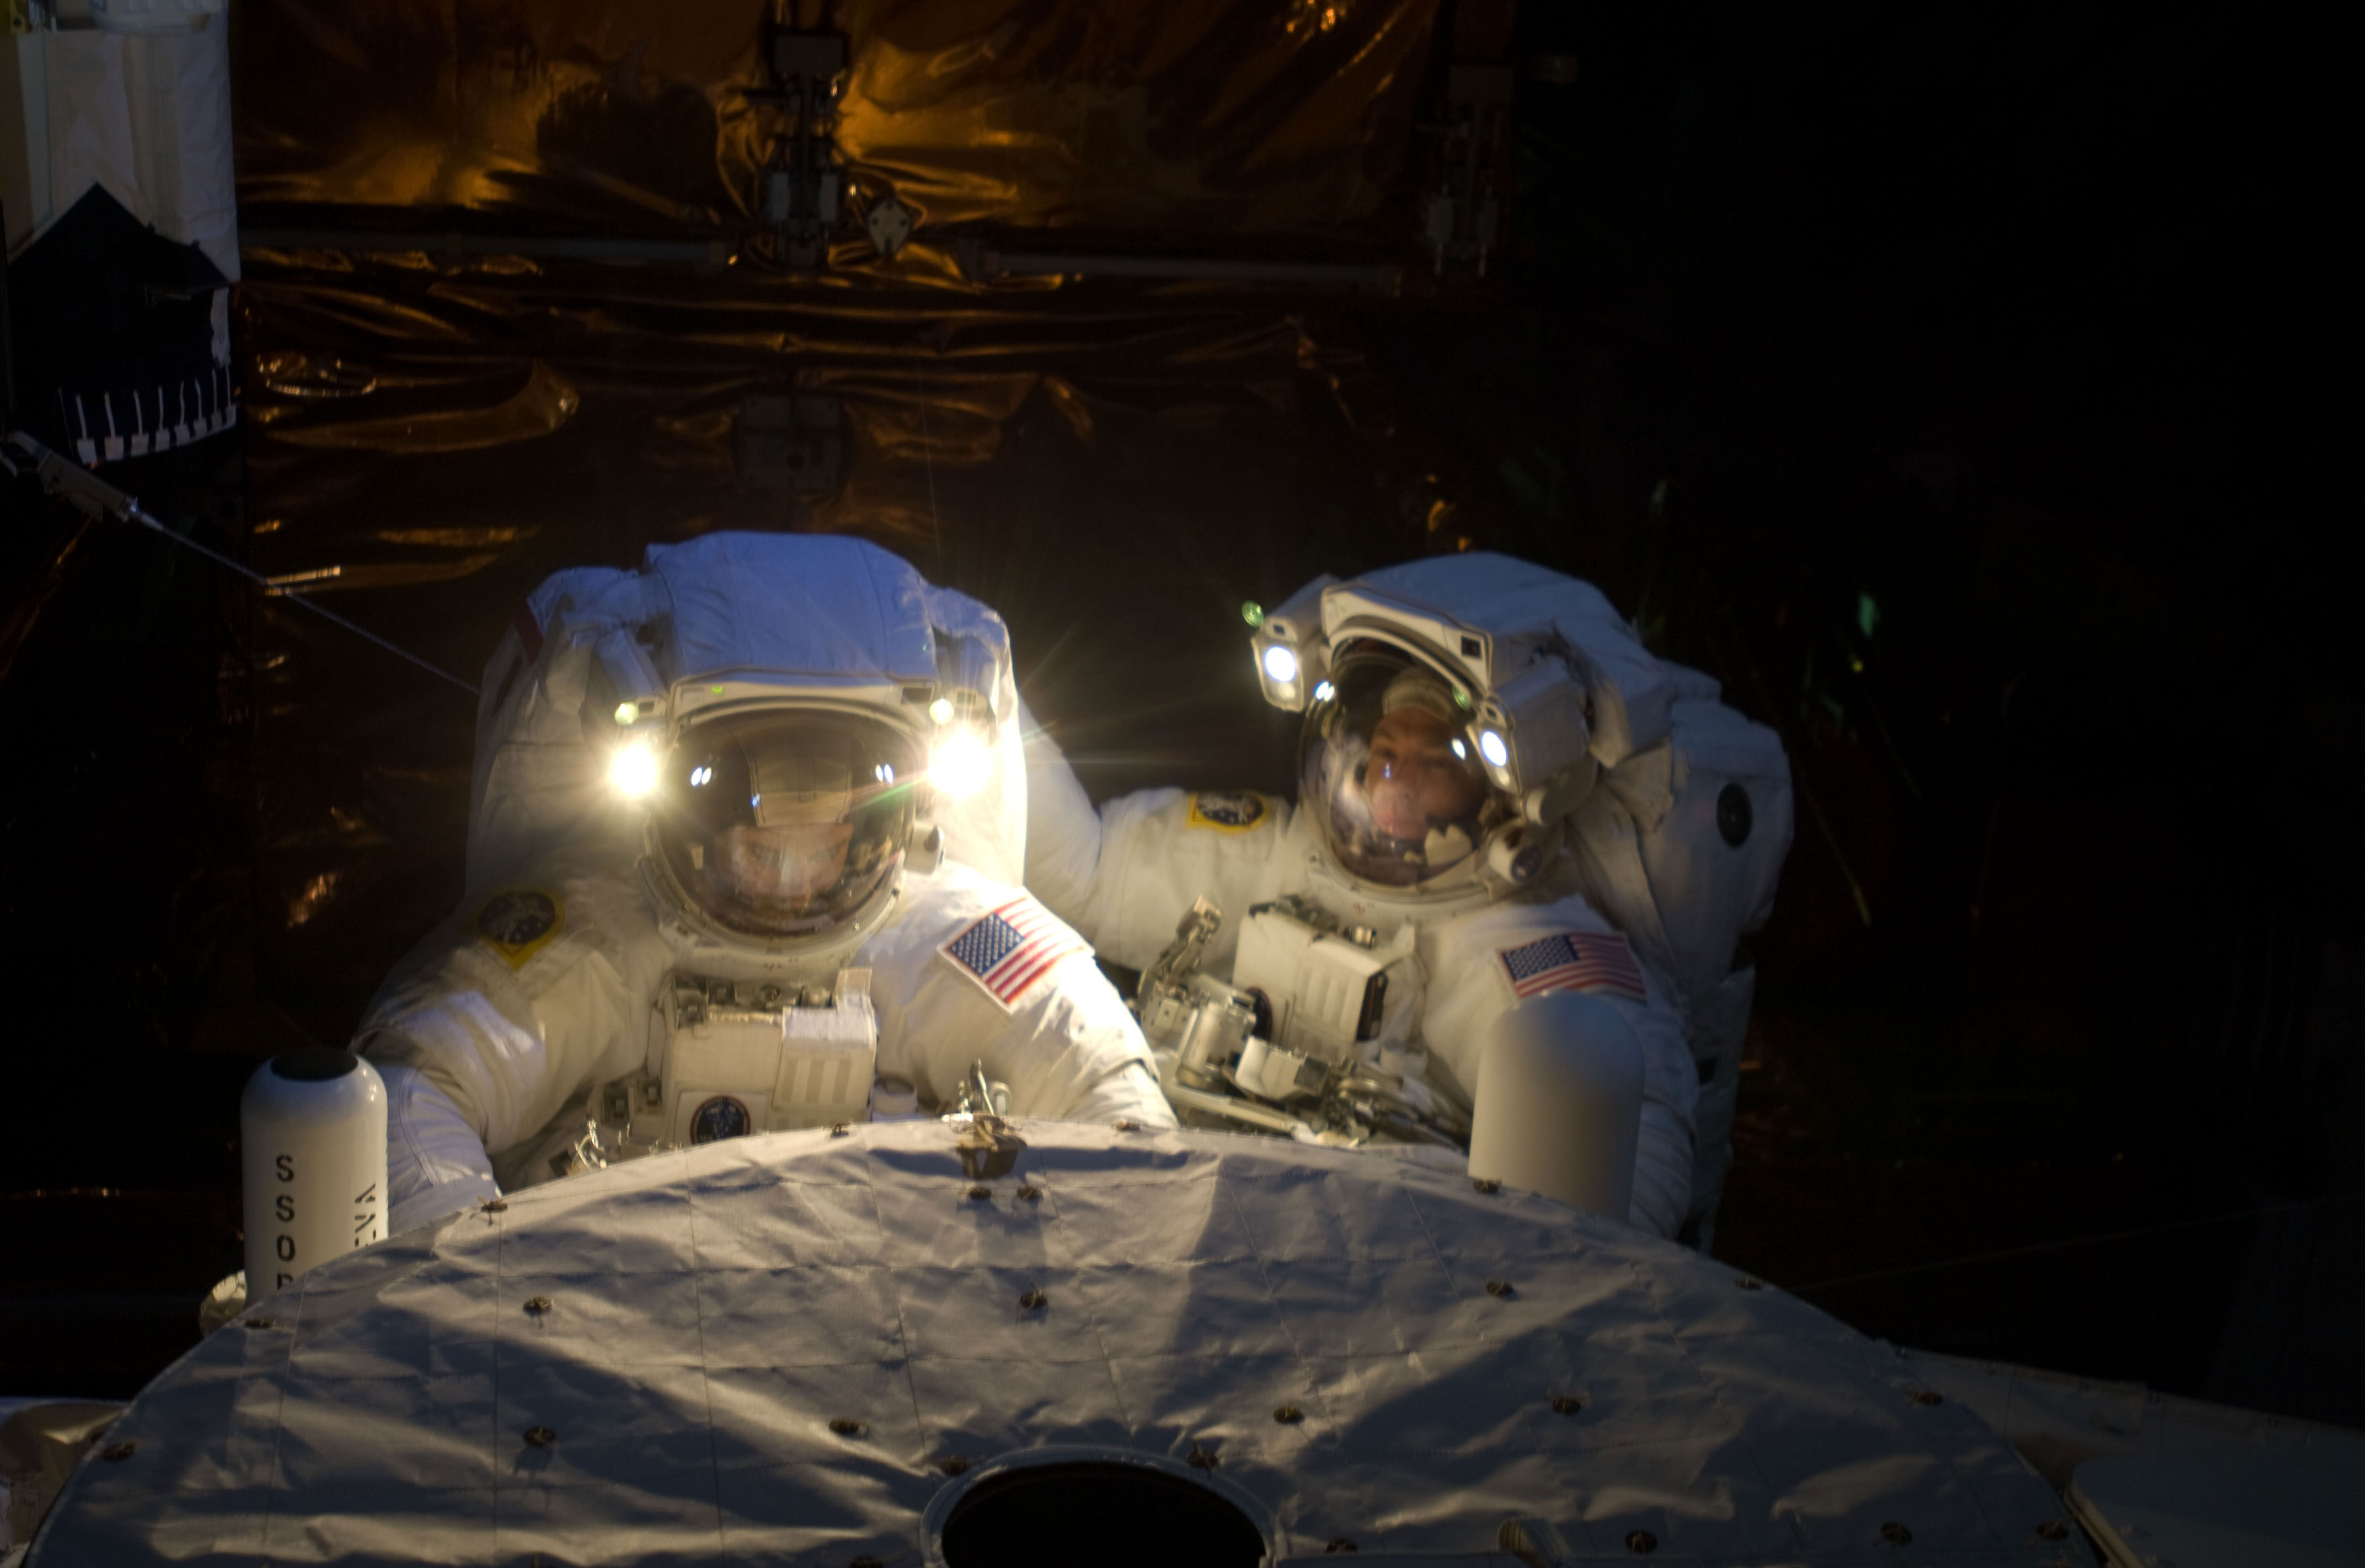 Astronauts John Grunsfeld (left) and Andrew Feustel, both STS-125 mission specialists, participate in the mission's fifth and final ever session of extravehicular activity (EVA) to repair and upgrade the Hubble Space Telescope. During the seven-hour and two-minute spacewalk, Grunsfeld and Feustel installed a battery group replacement, removed and replaced a Fine Guidance Sensor and three thermal blankets (NOBL) protecting Hubble's electronics. Credit: NASA